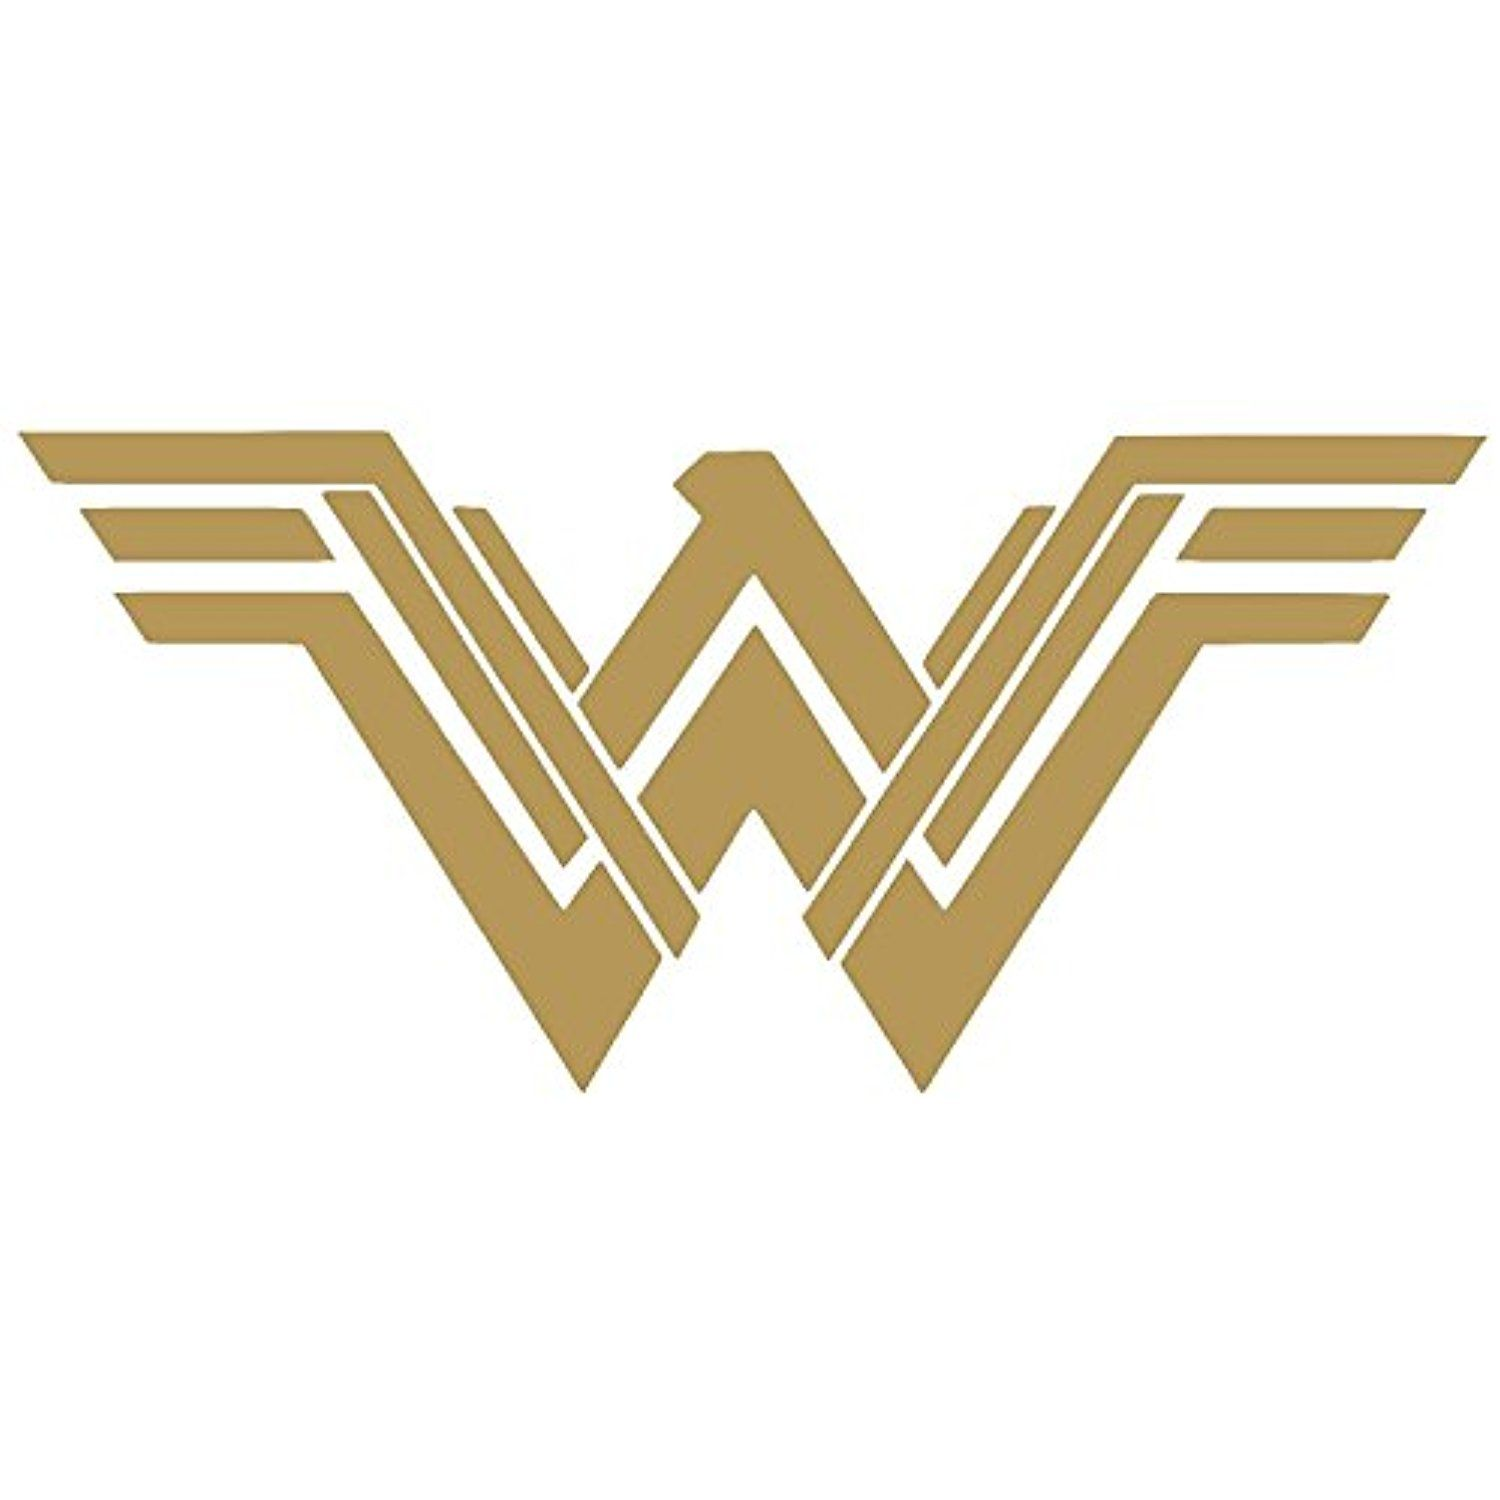 Wonder Woman New Movie Vinyl Sticker Decal 10 X 4 5 Gold Want To Know More Click On The Image This I Wall Stickers Murals Vinyl Sticker Wall Stickers [ 1500 x 1500 Pixel ]